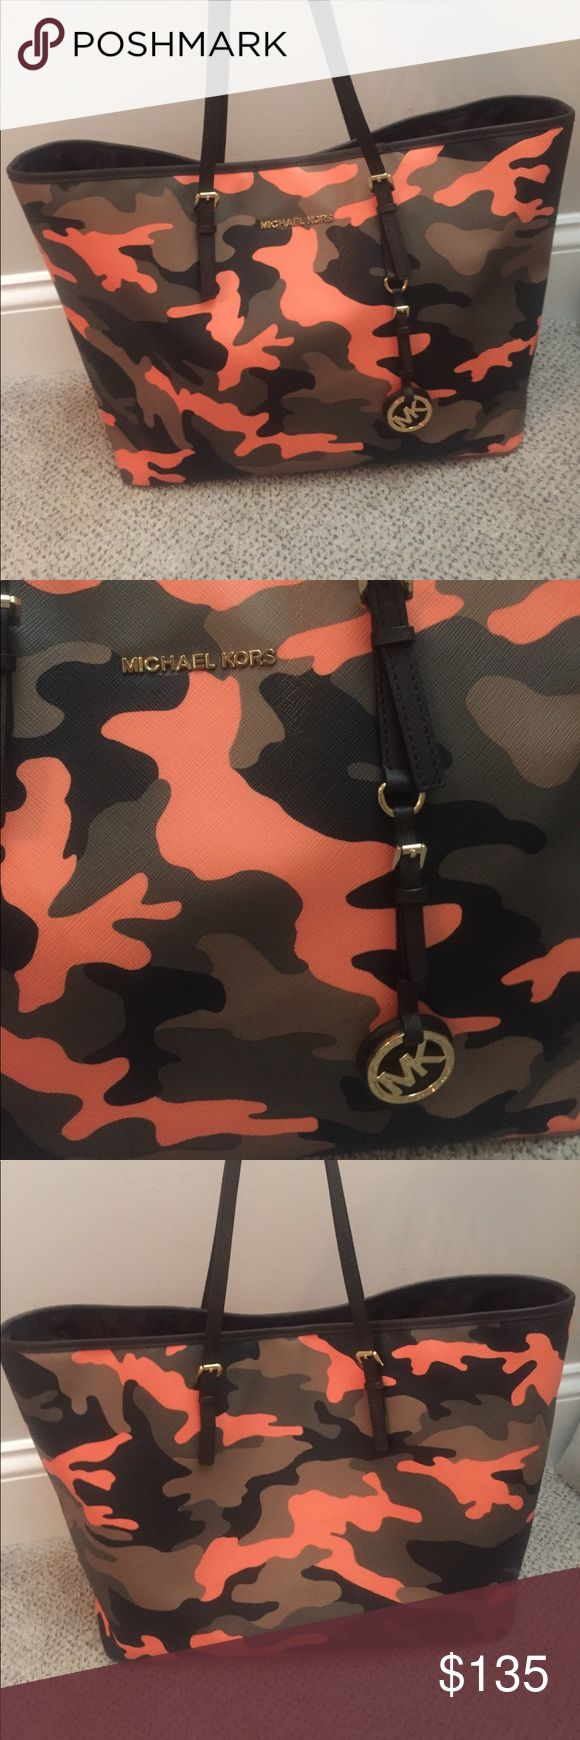 Michael Kors Tote- orange camo Michael Kors Large tote, in mint condition. Exclusive orange camo. No signs of ANY wear Michael Kors Bags Totes